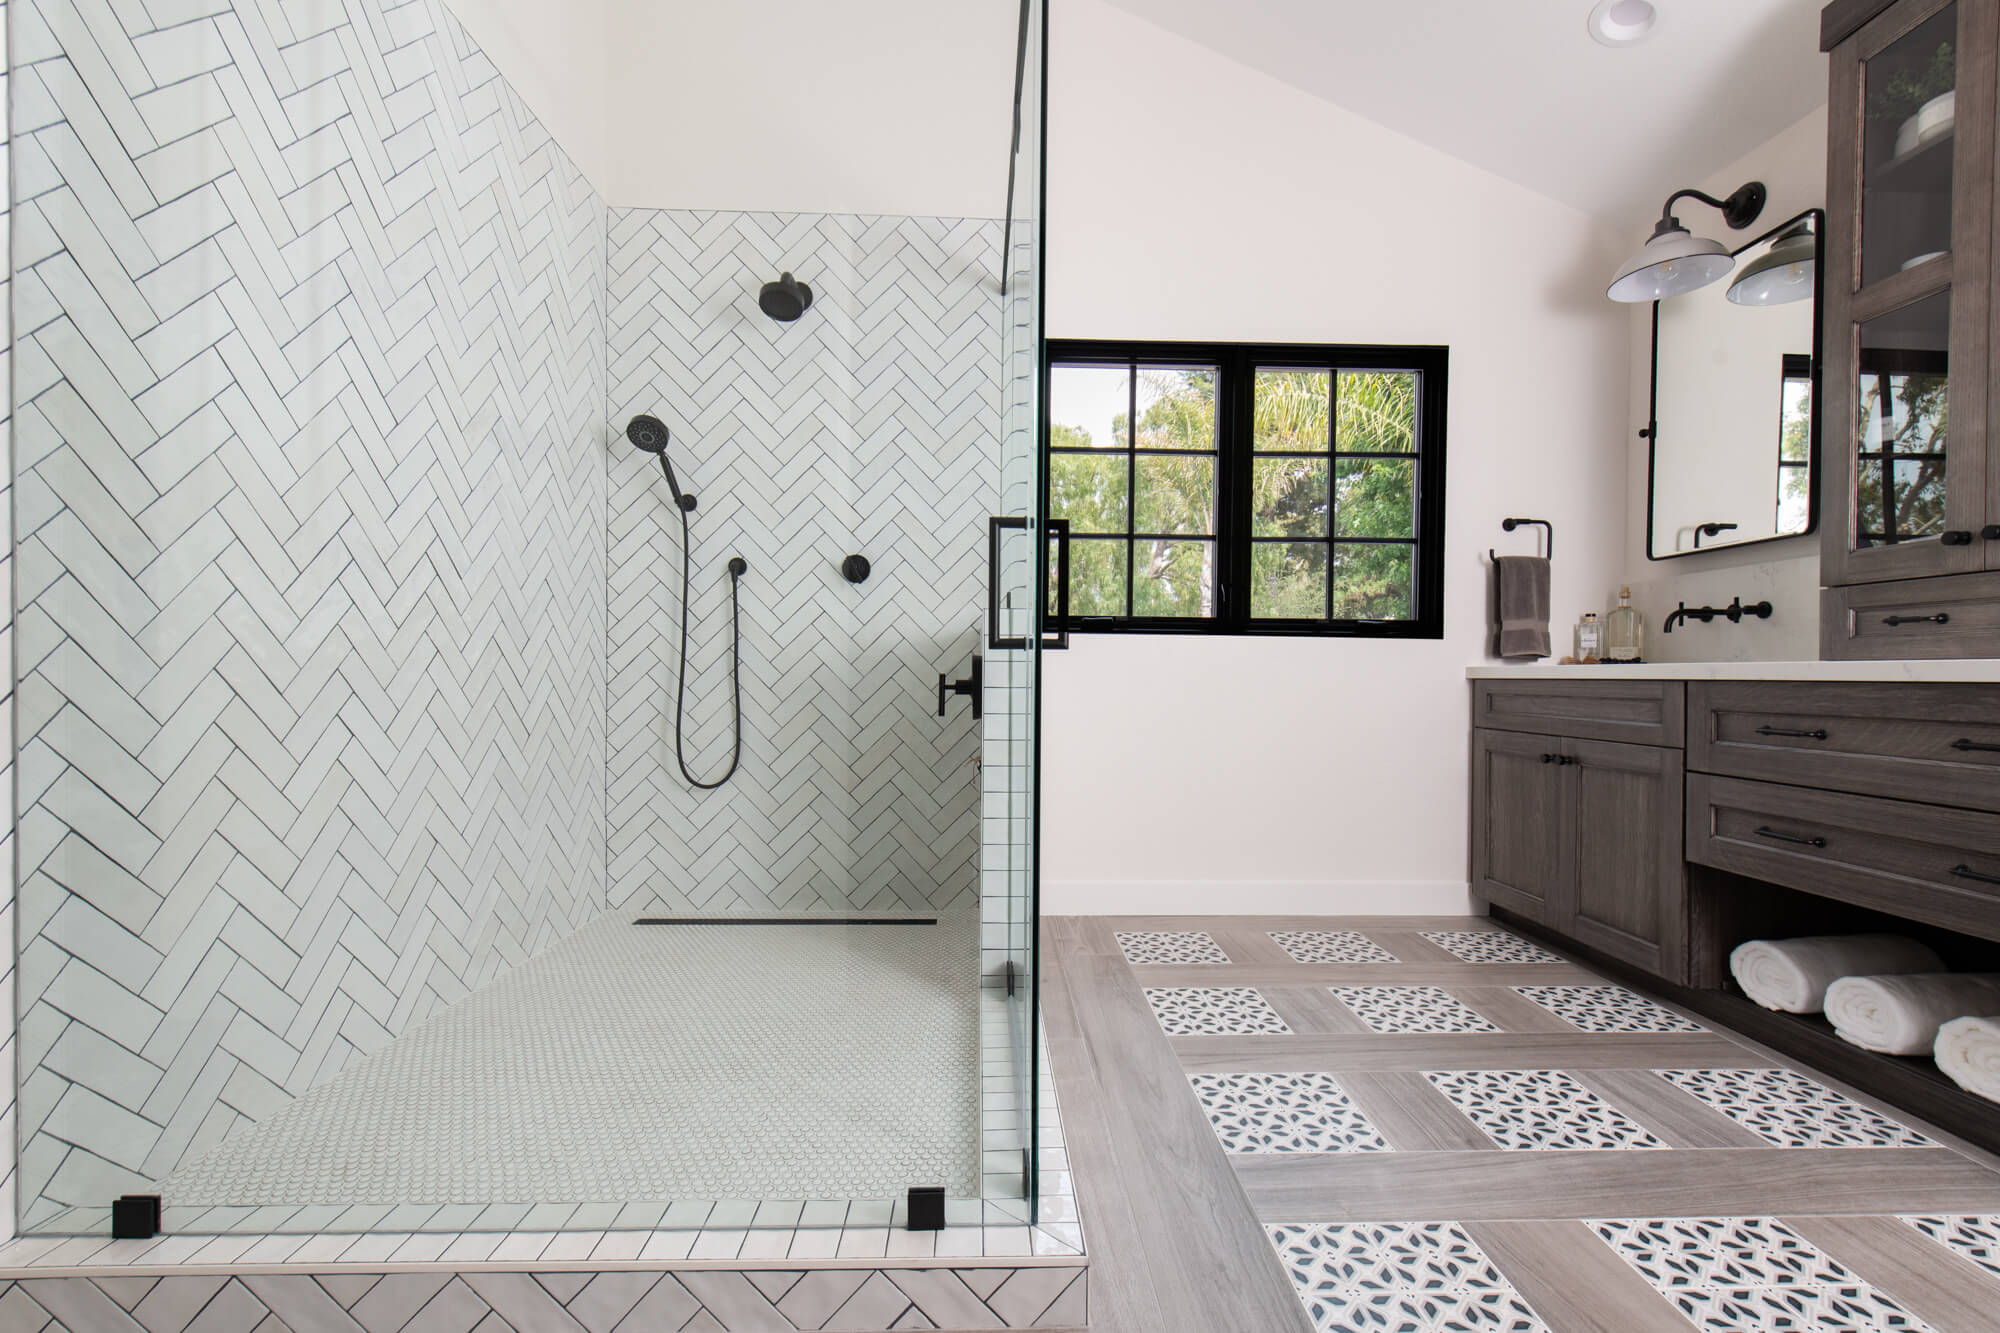 Bathroom Renovation With Herringbone Pattern Shower Tile and Patterned Floor Insets